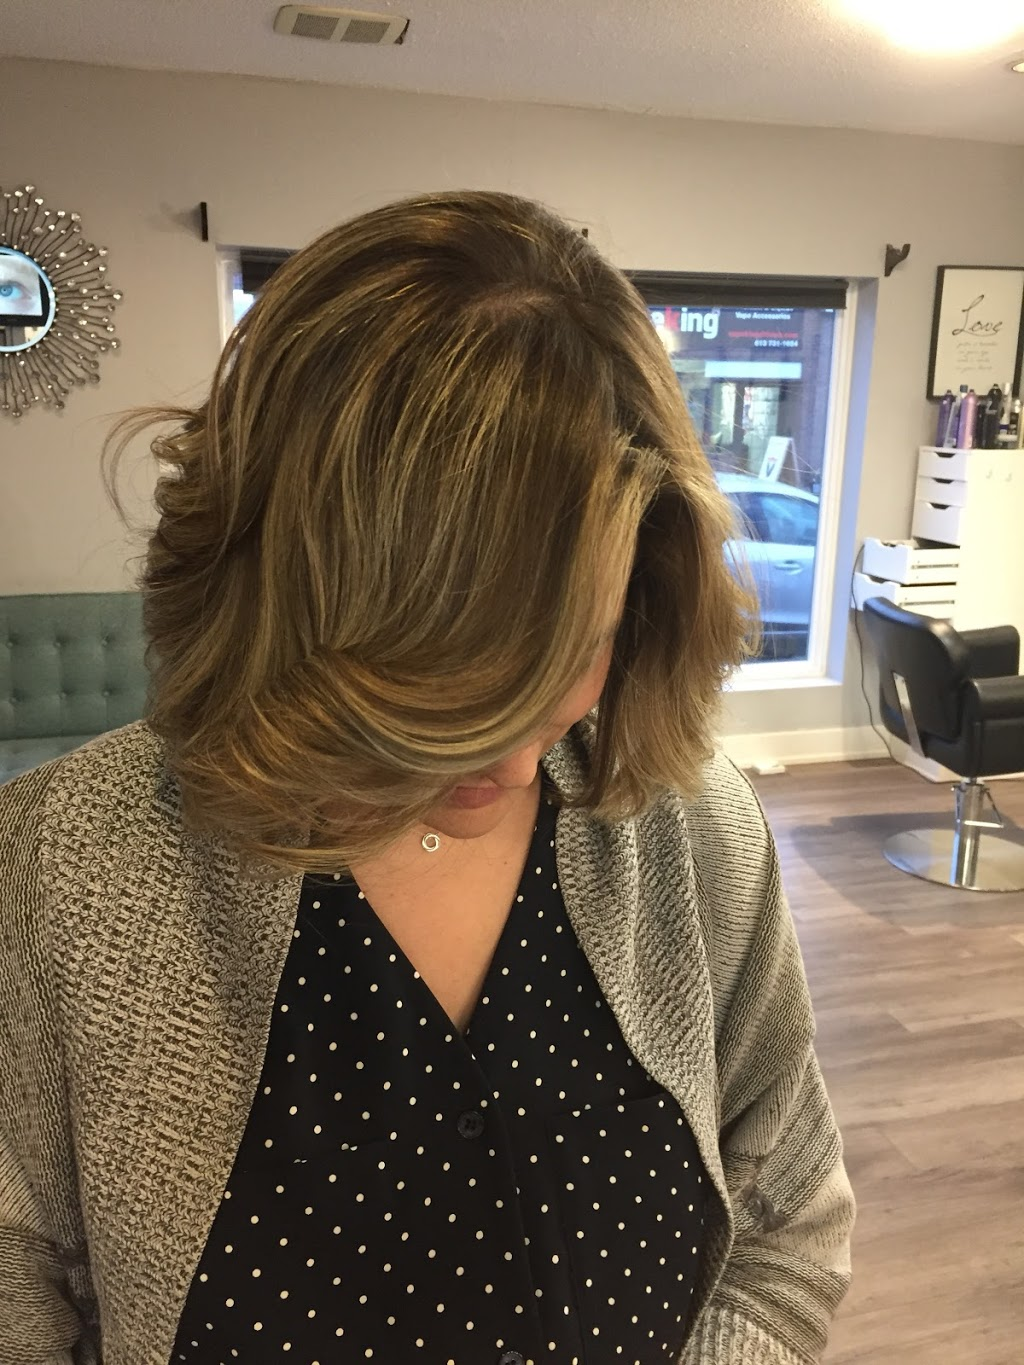 Unique Hair By Sam - Salon | hair care | 1223 Bank St, Ottawa, ON K1S 3X7, Canada | 6139798587 OR +1 613-979-8587